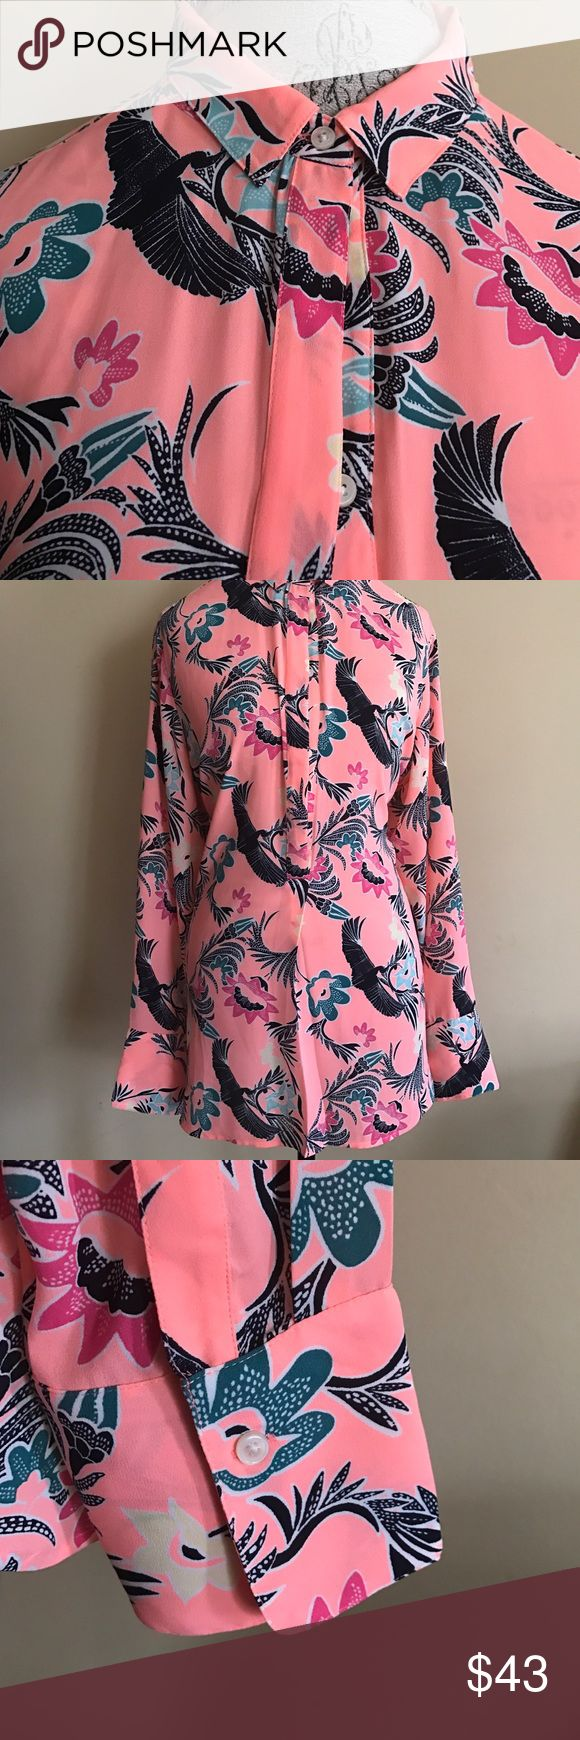 NWT Print Button Up Banana Republic Blouse From Banana Republic's Spring Collection. Perfect with slacks or skirt! Vibrant print and colors. Collar. Button Sleeve. Light and Flowy material. Banana Republic Tops Blouses